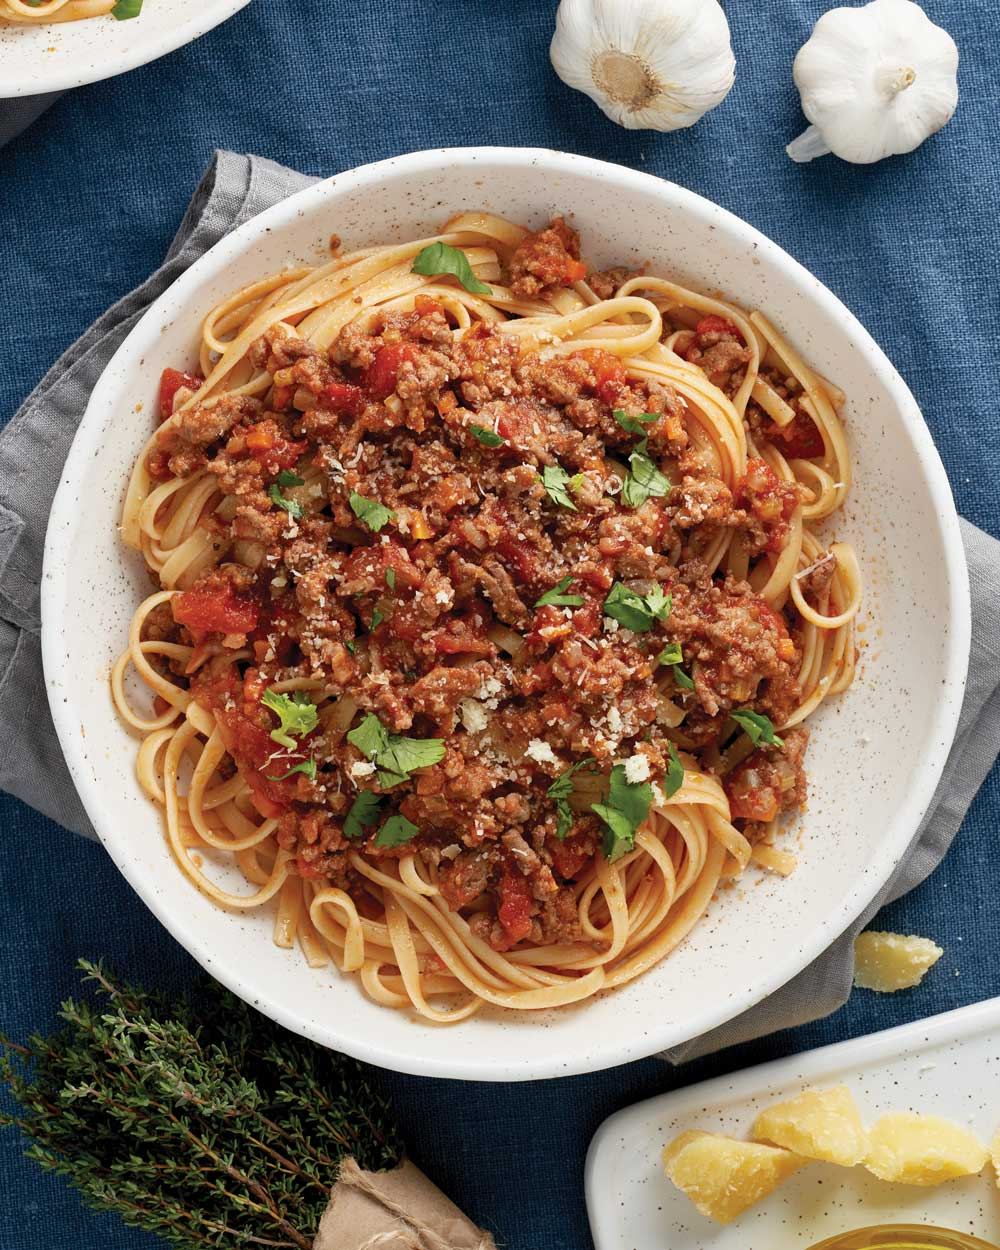 Linguine with Bell Peppers and Sausage